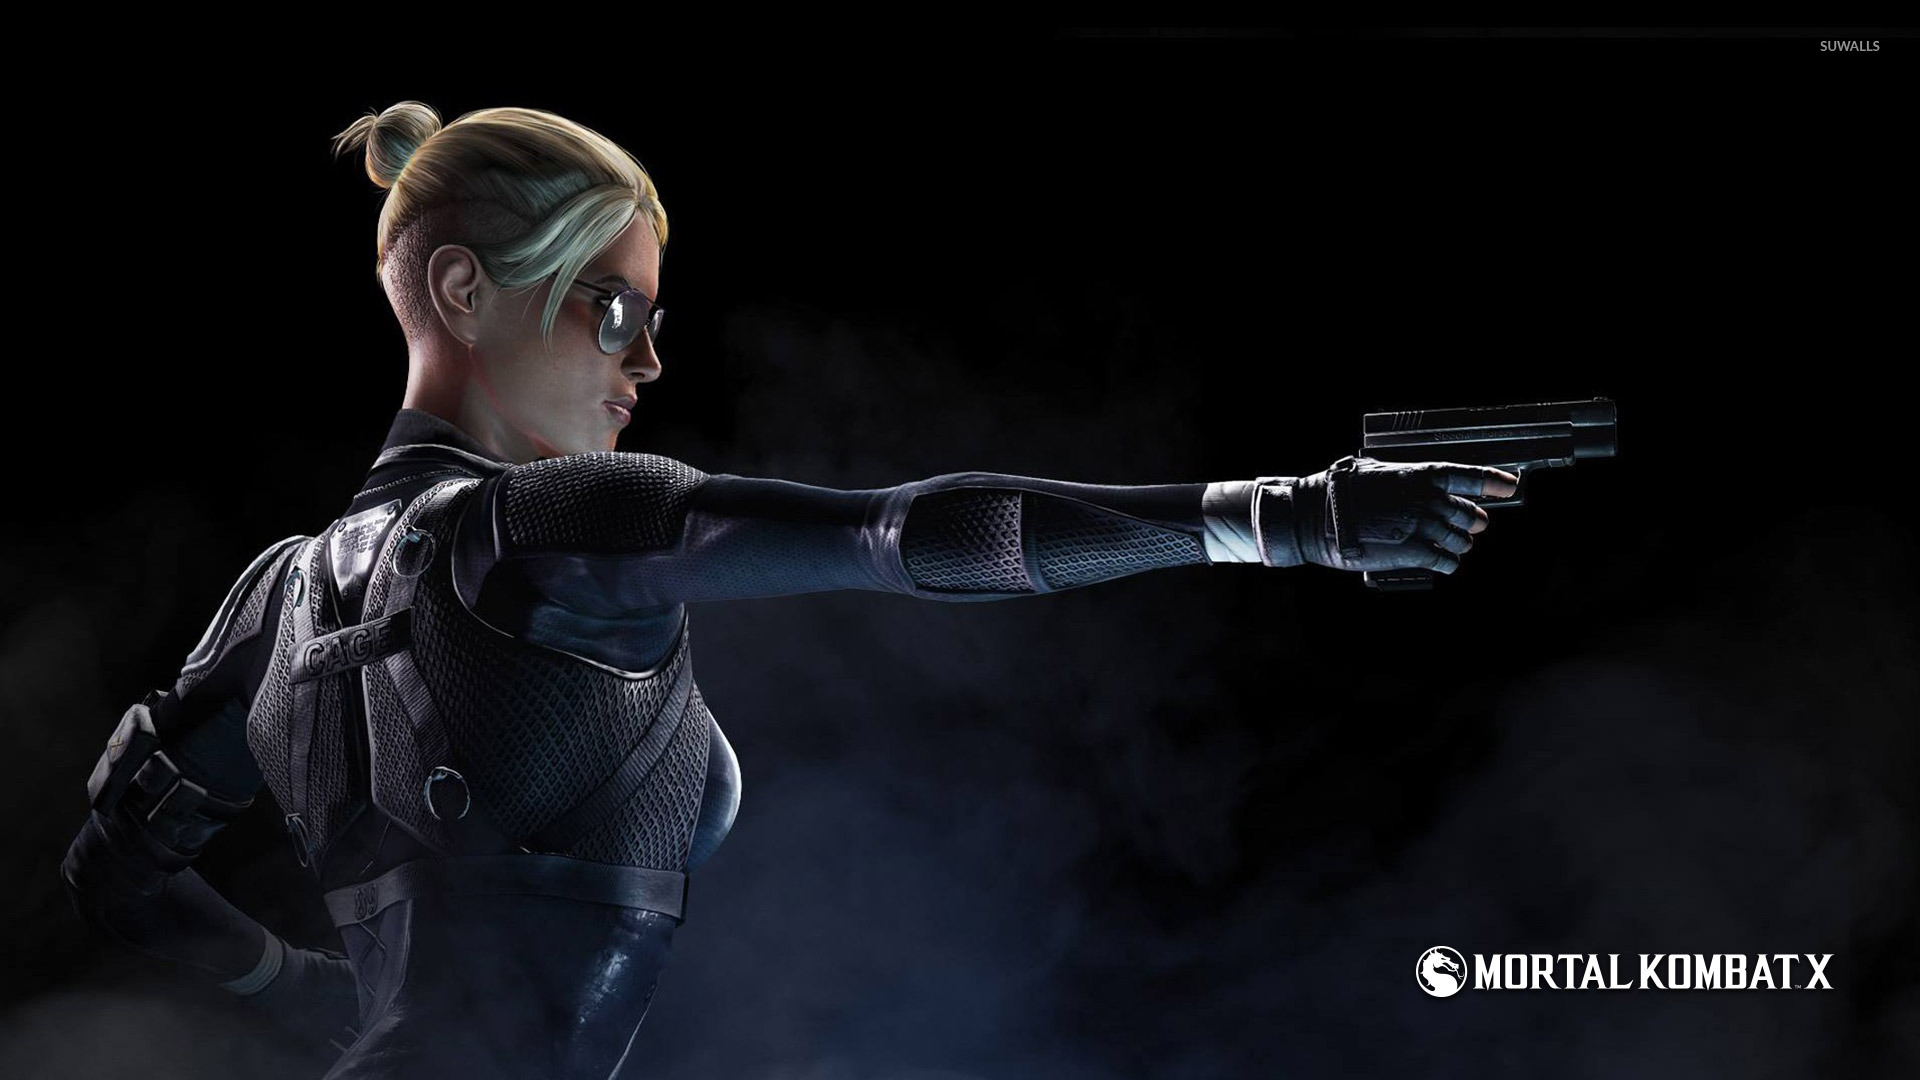 Cassie Cage Mortal Kombat X Wallpaper Game Wallpapers 31360